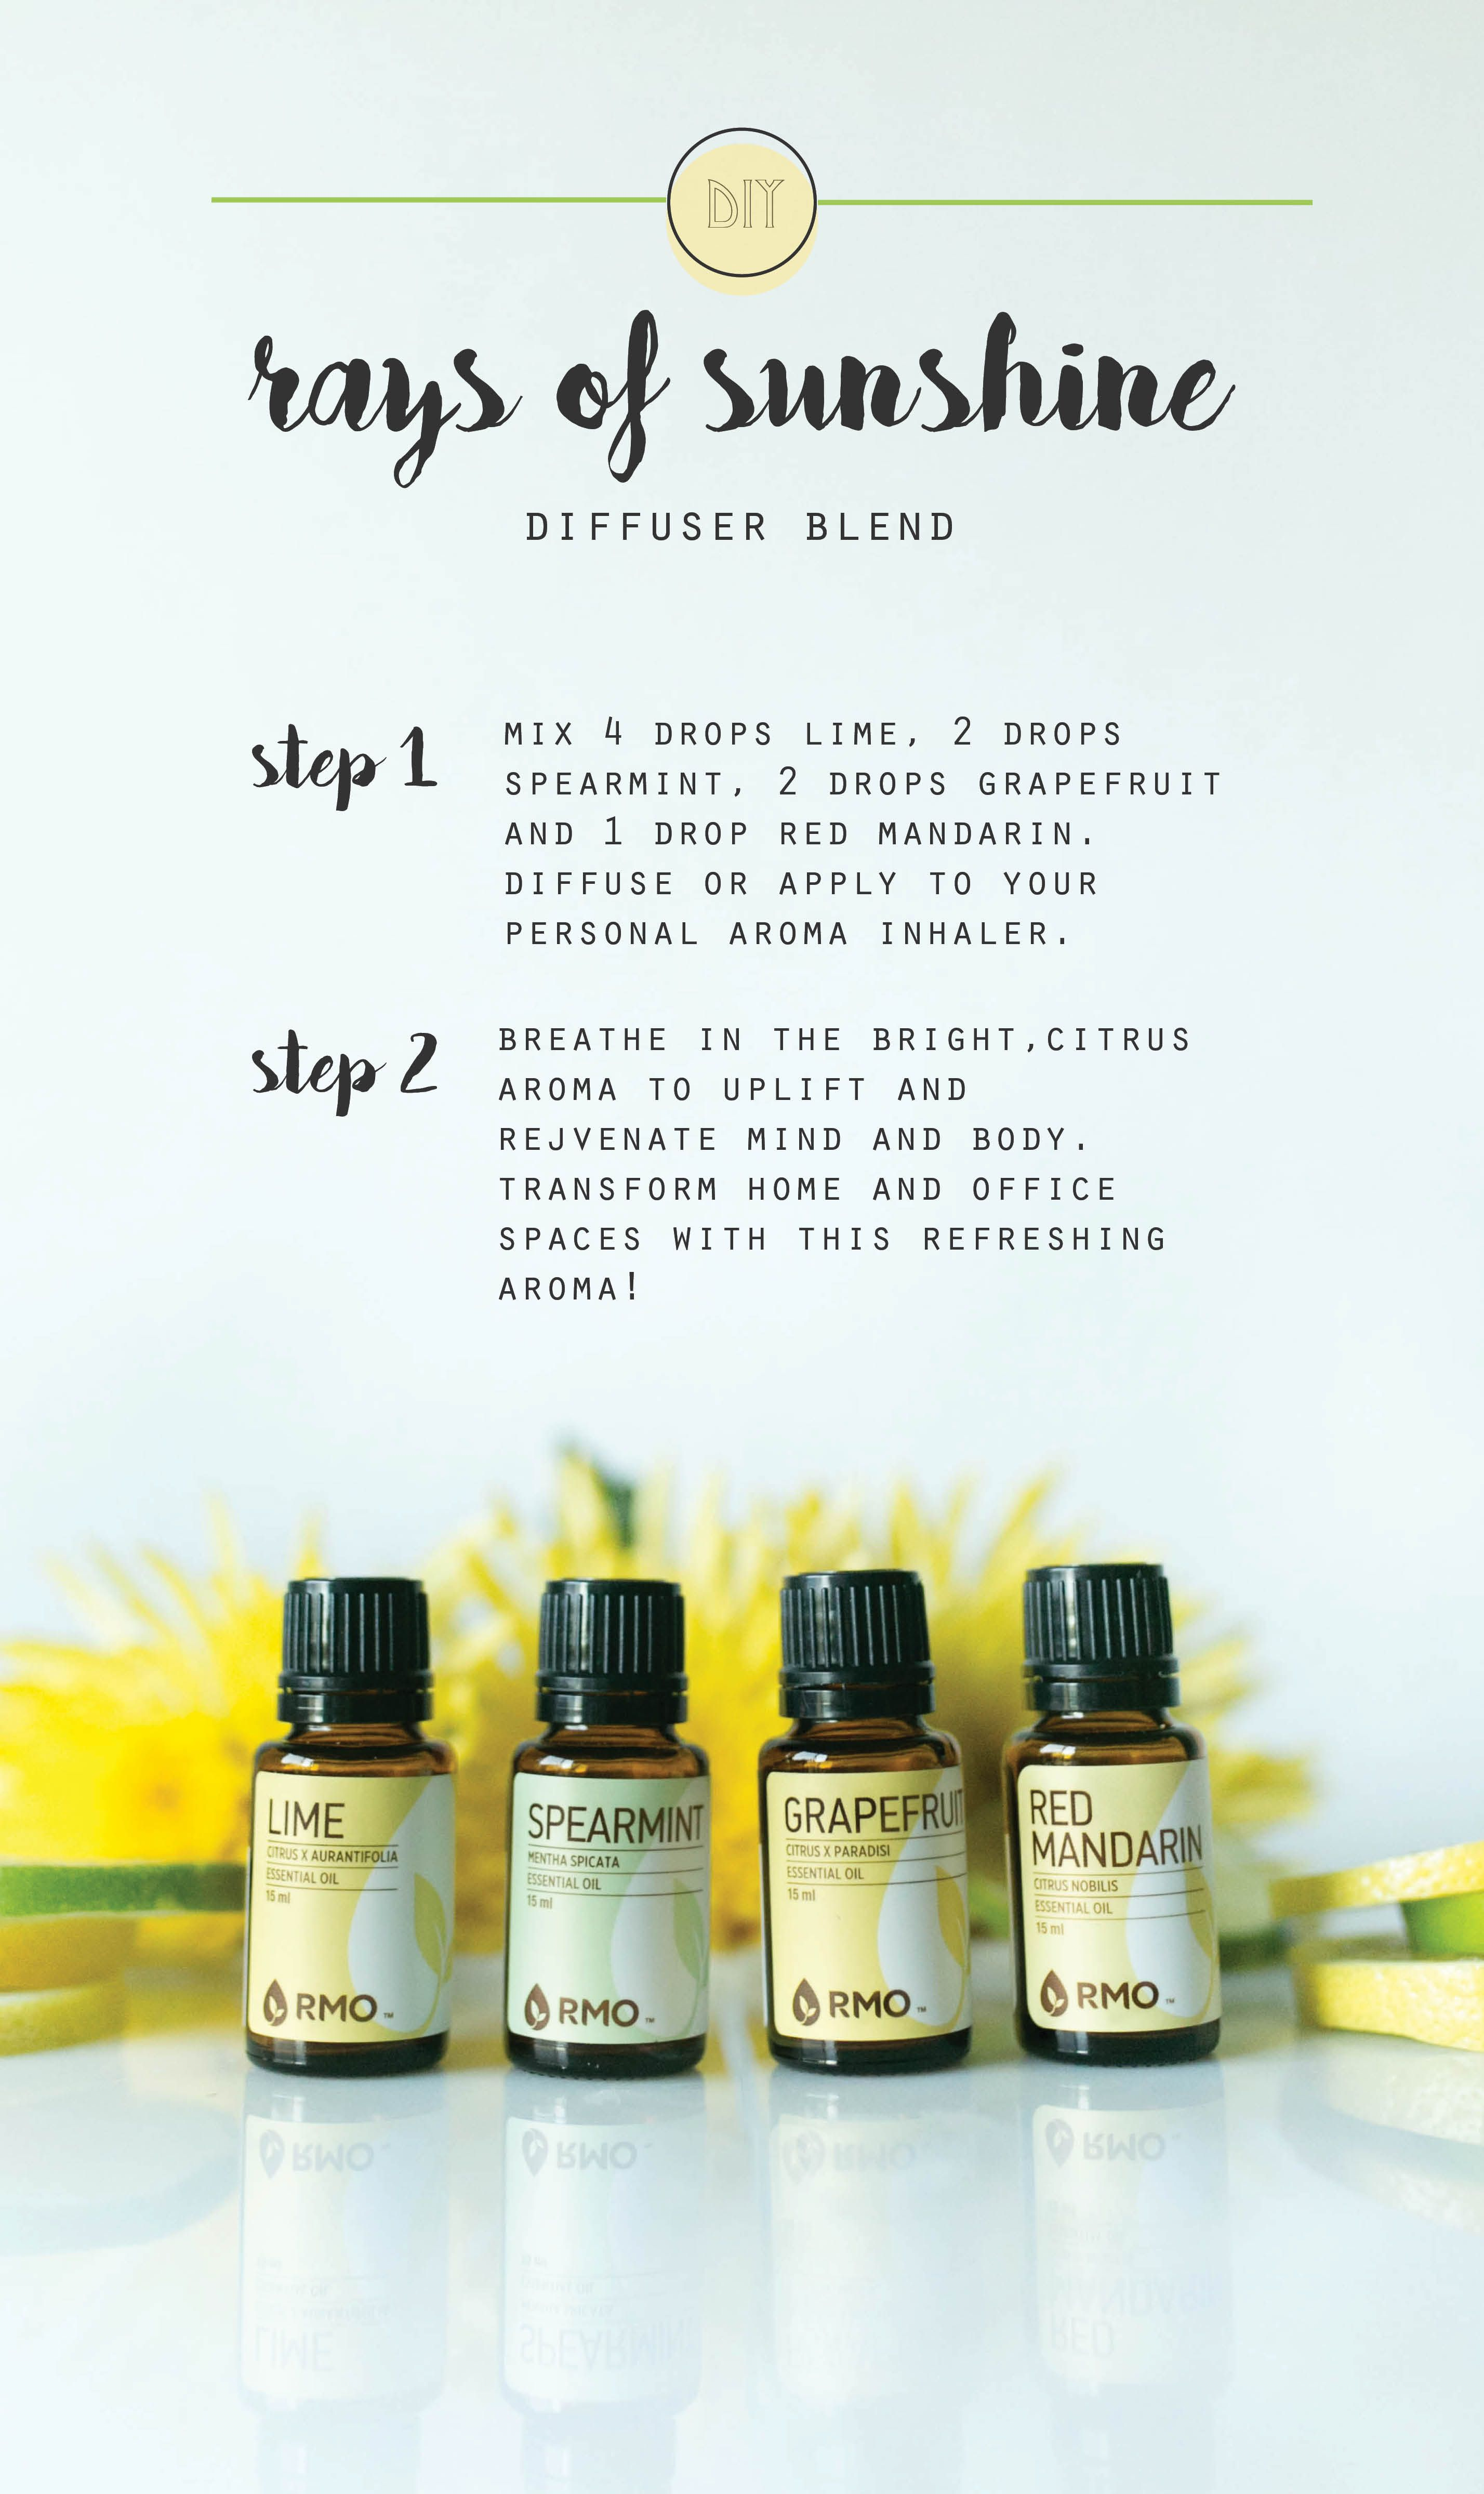 Rays Of Sunshine Diffuser Blend The Rmo Blog Essential Oil Blends Recipes Essential Oil Blends Diffuser Blends